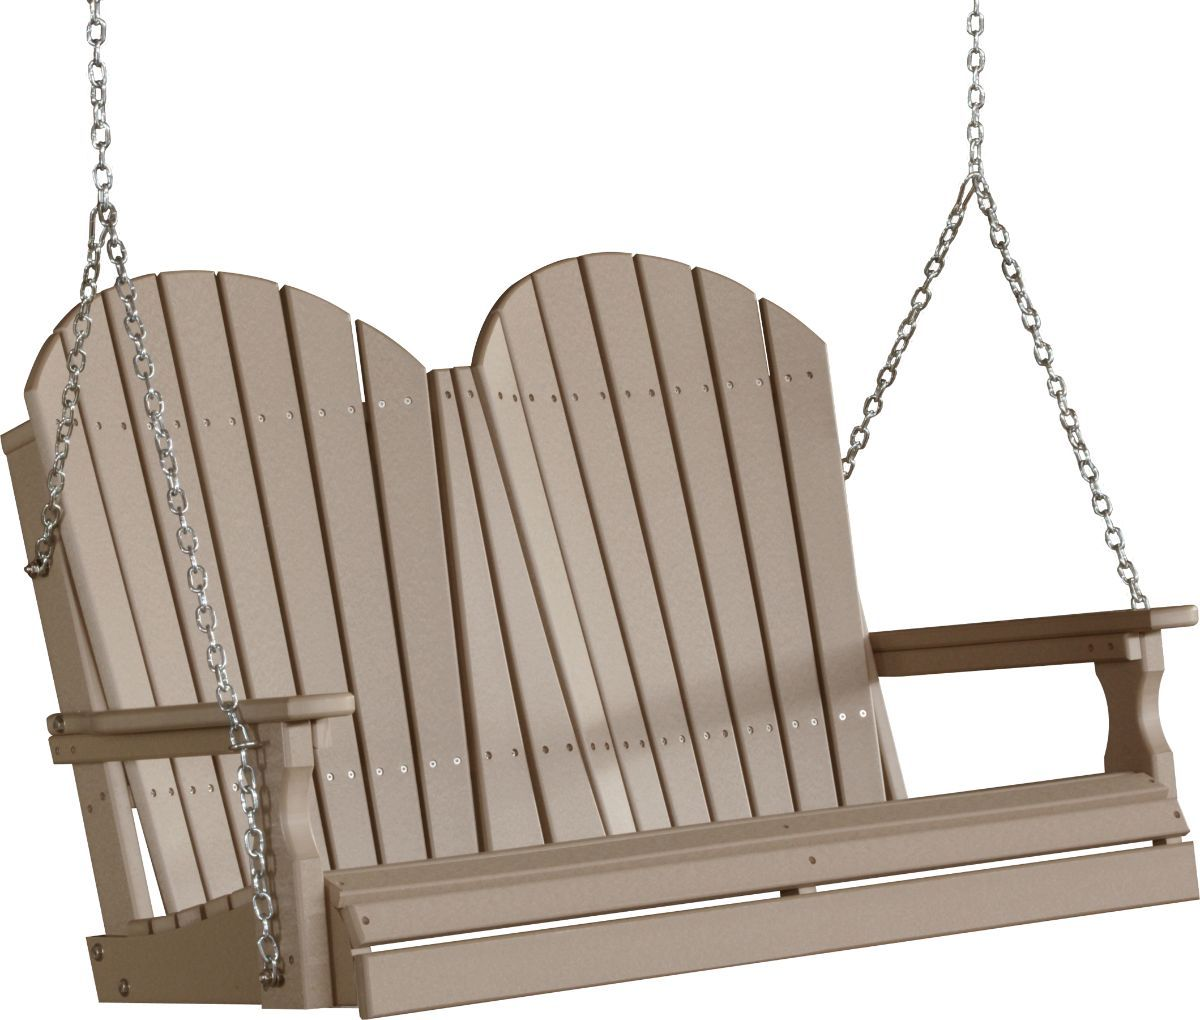 Weatherwood Tahiti Adirondack Porch Swing